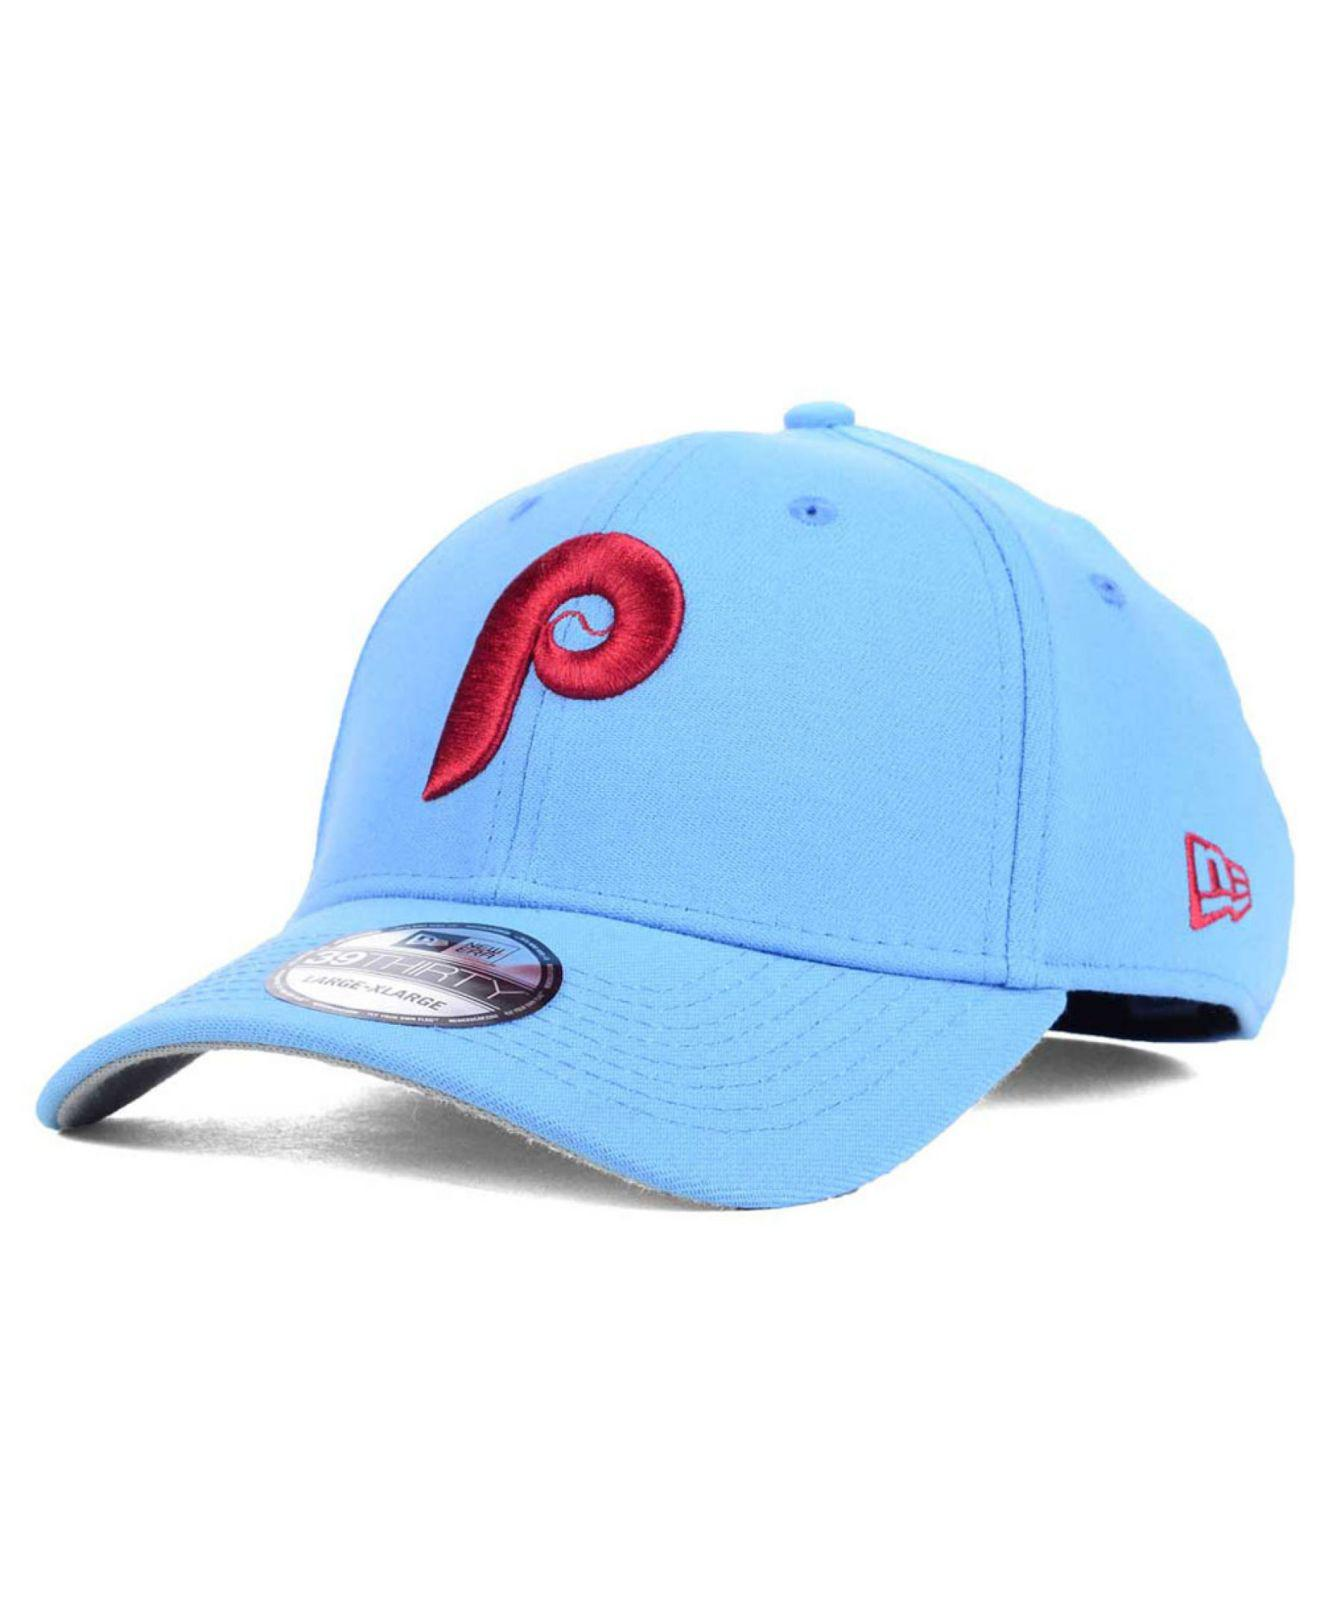 9a898caad17 Lyst - KTZ Philadelphia Phillies Core Classic 39thirty Cap in Blue ...